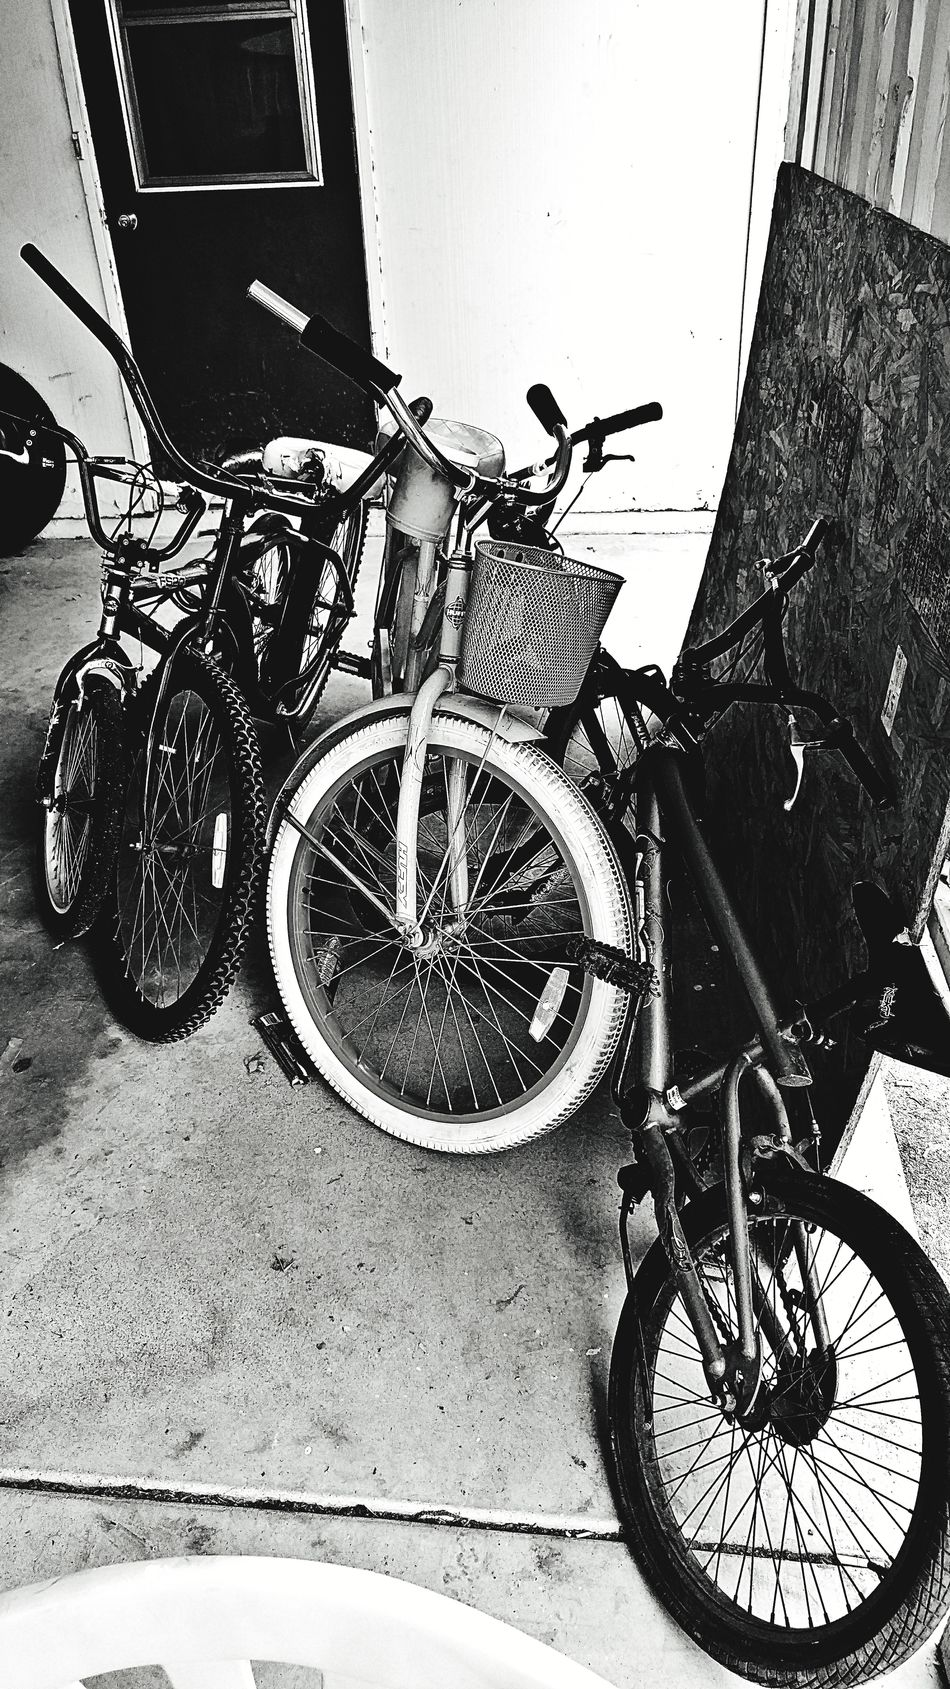 bikes Bicycle Mode Of Transport Stationary Transportation Land Vehicle No People Outdoors Day Check This Out EyeEm Gallery Alleyezonmayphotography EyeEm Best Shots Black And White Photography Mesa Arizona